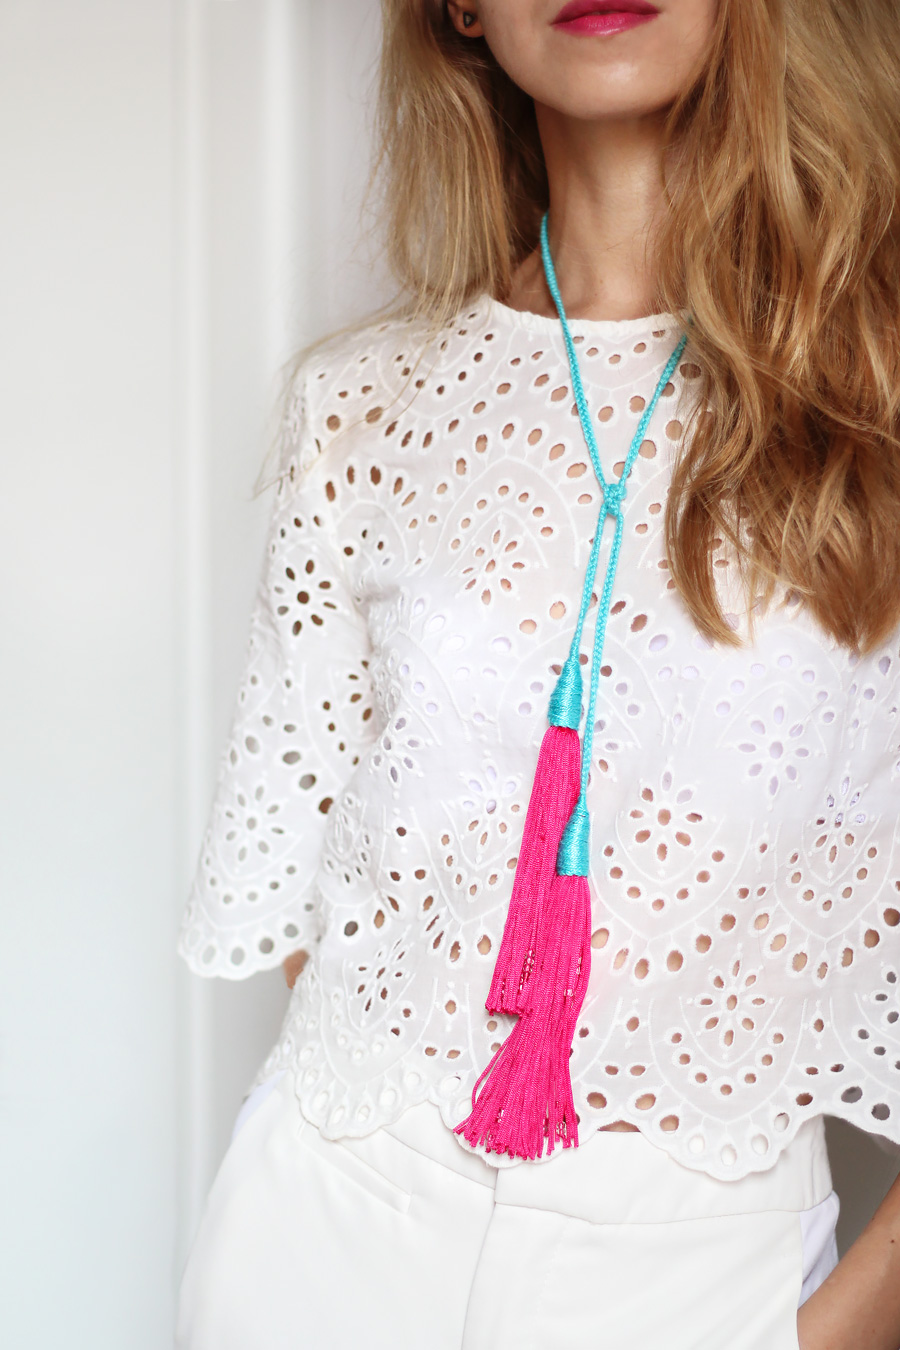 DIY braided tassel necklace tutorial, colorful summer accessories